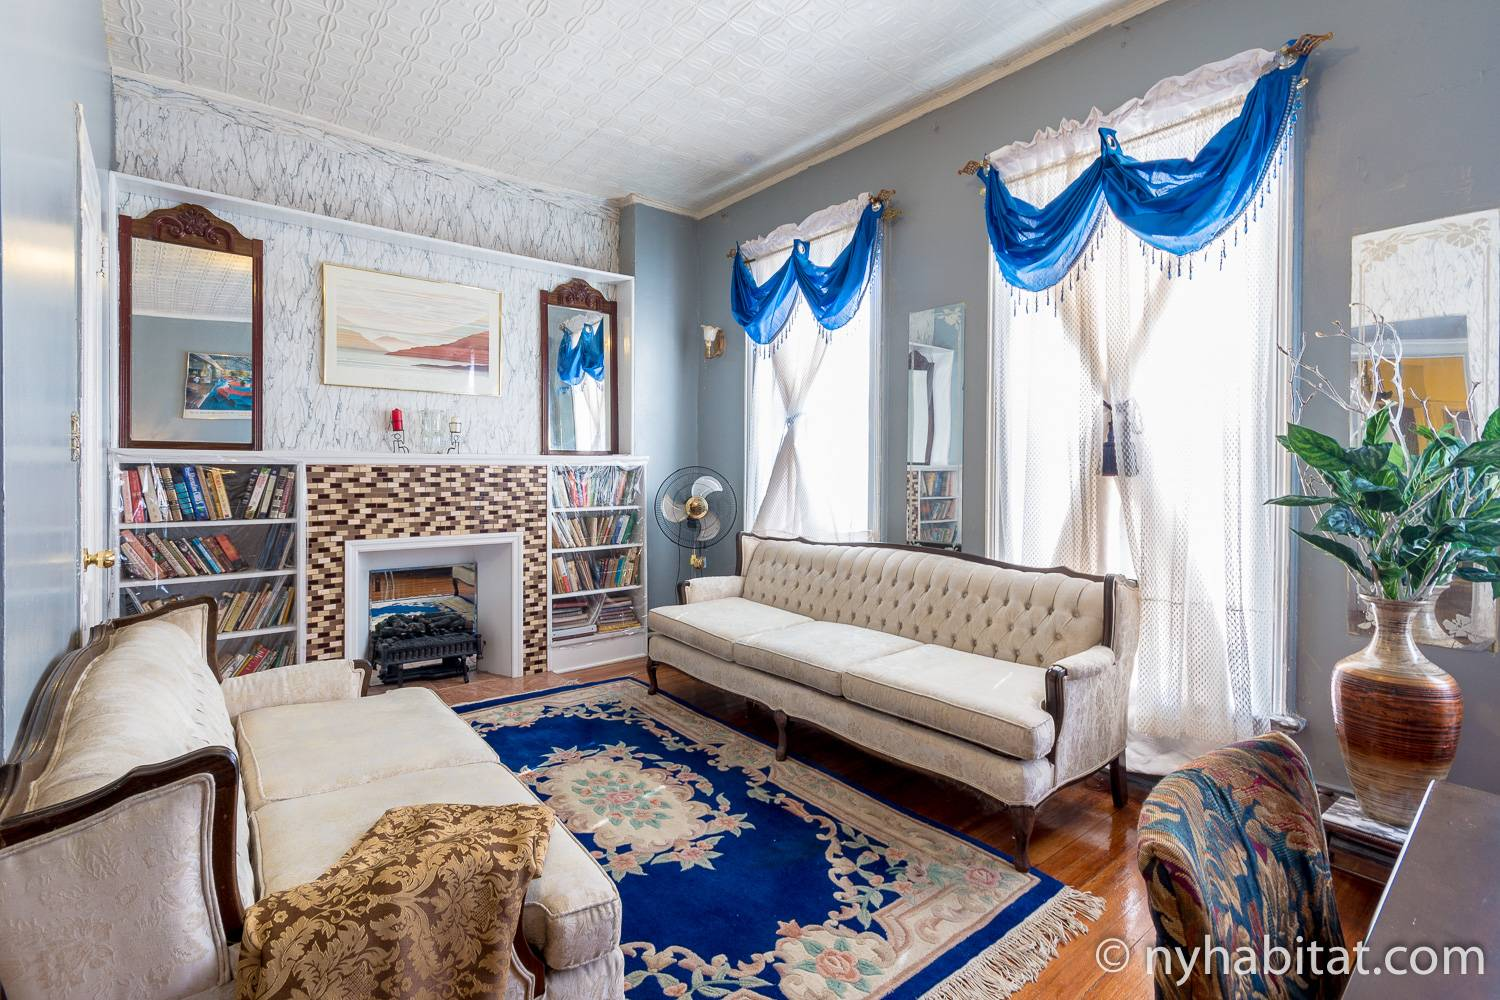 Image of living room of vacation rental NY-15544 with antique sofas around a fireplace